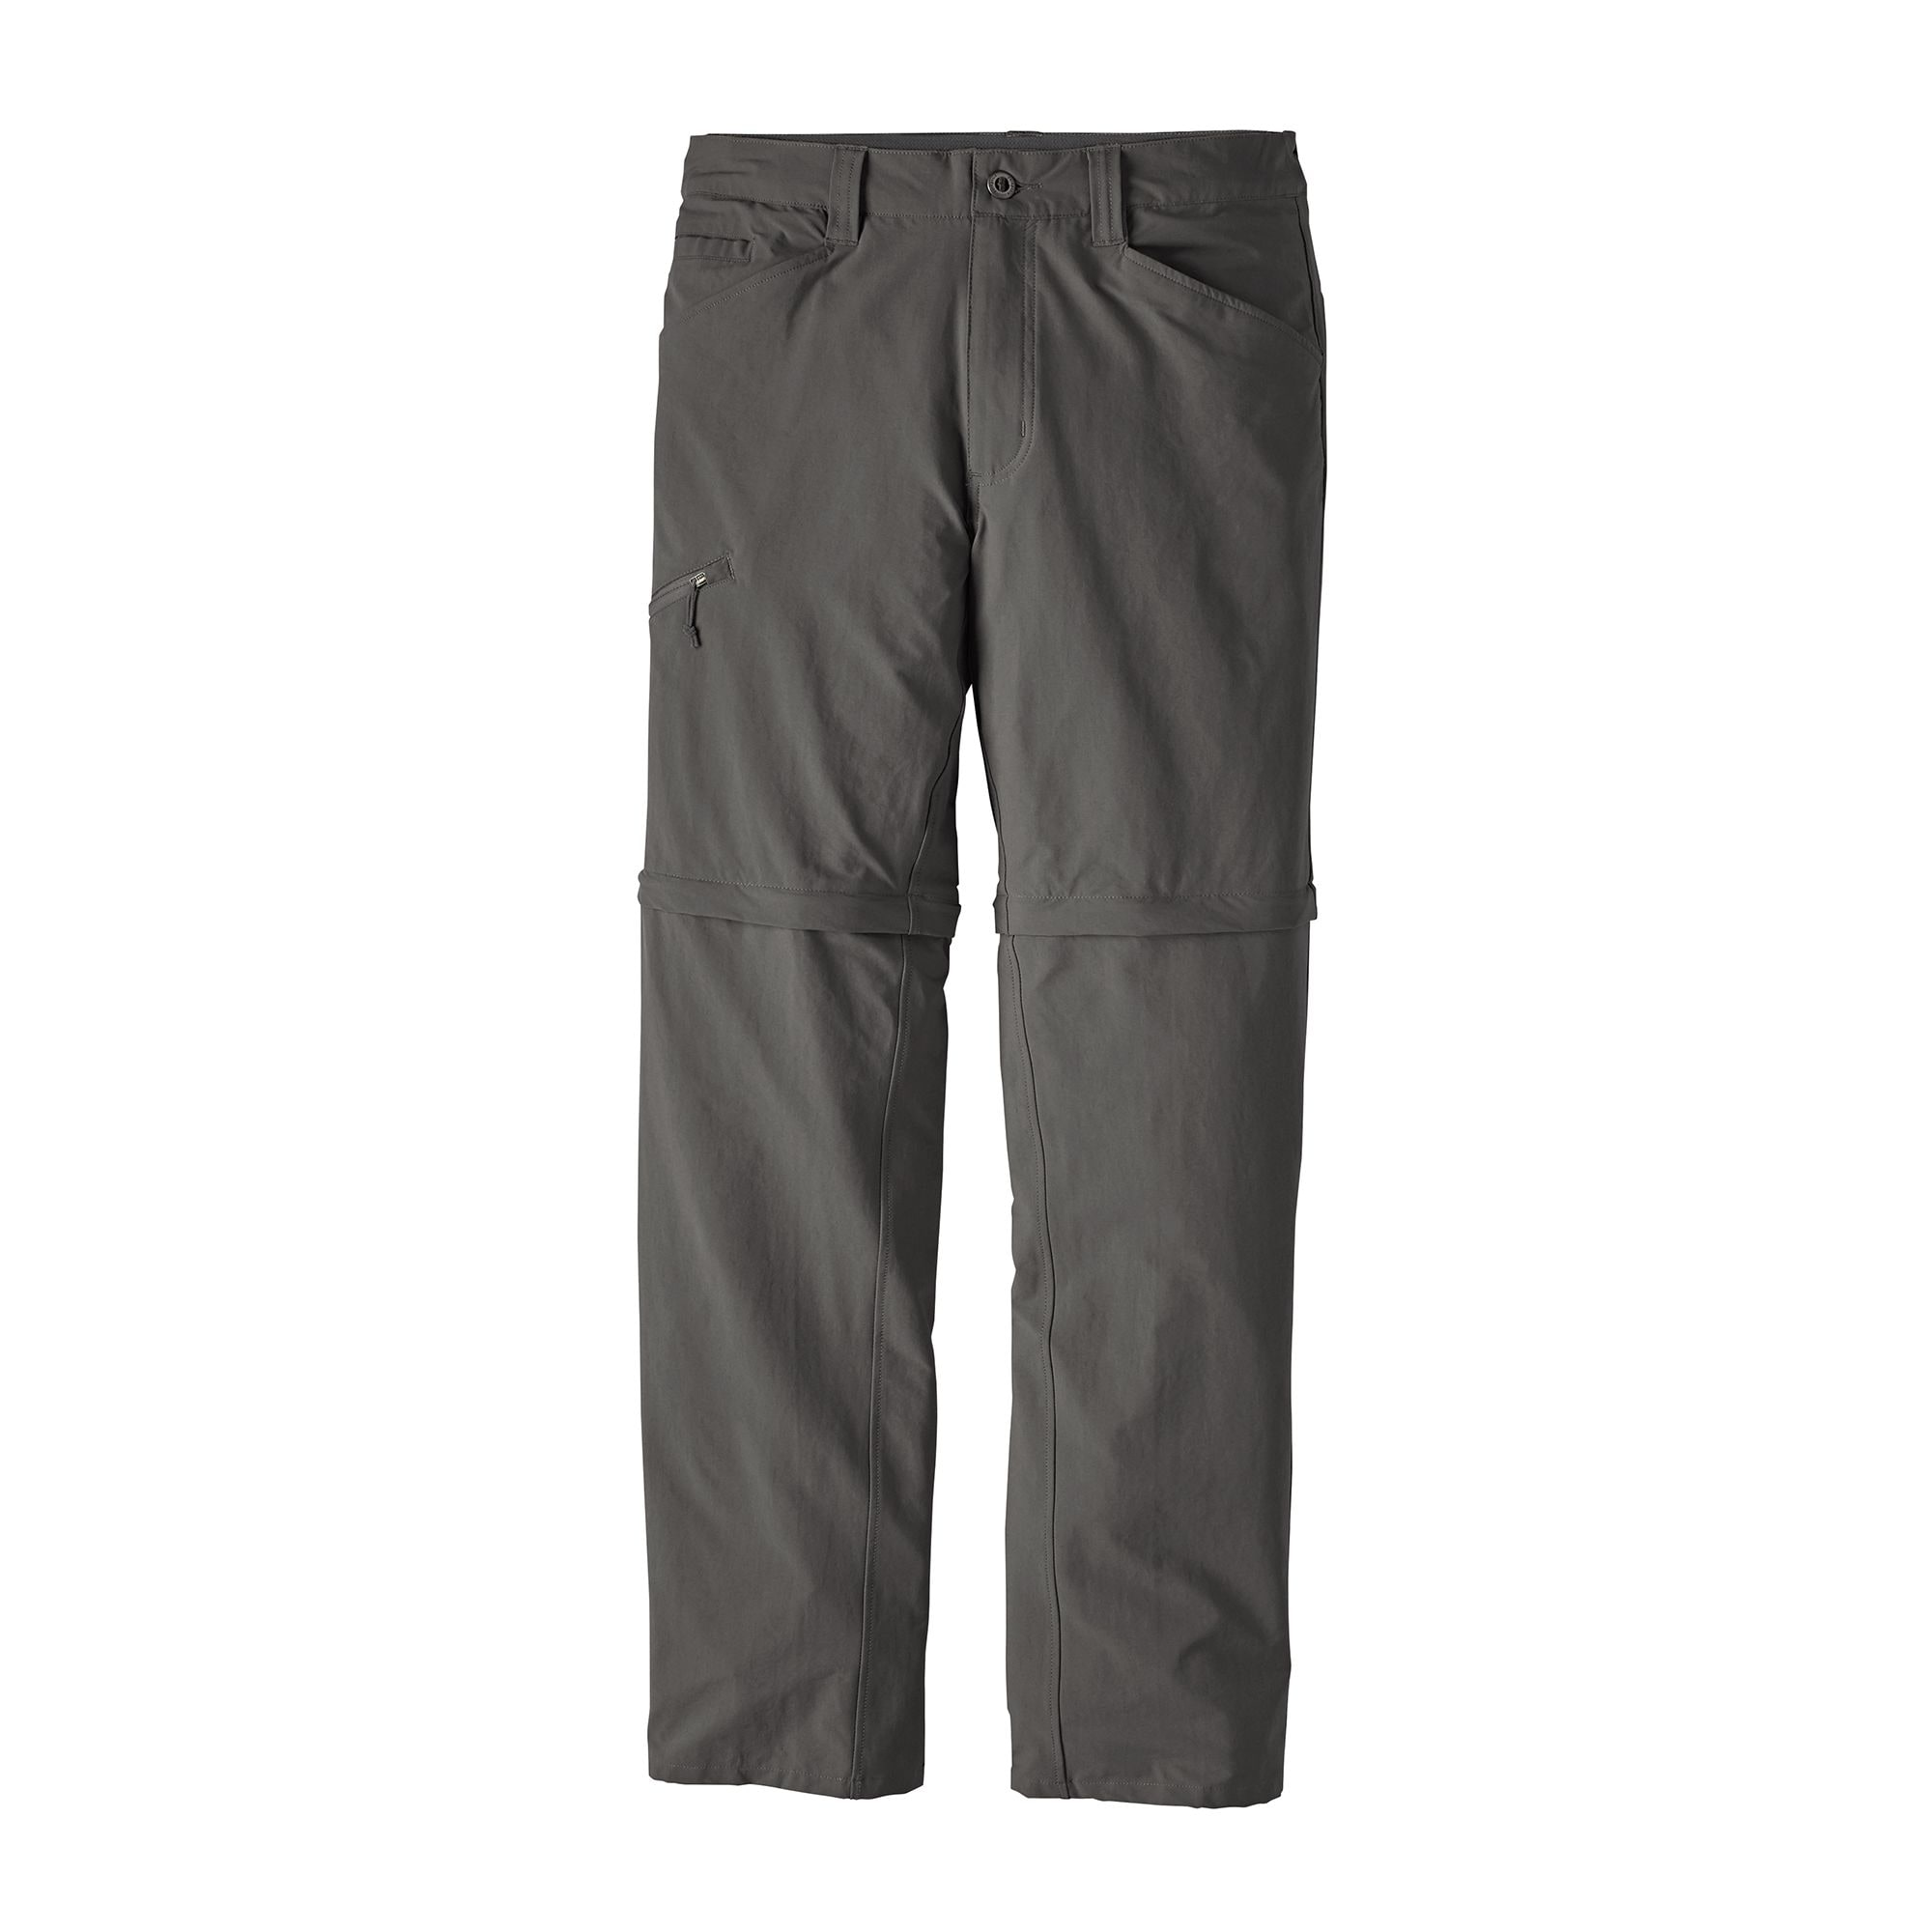 Patagonia Quandary Convertible Pants Forge Grey